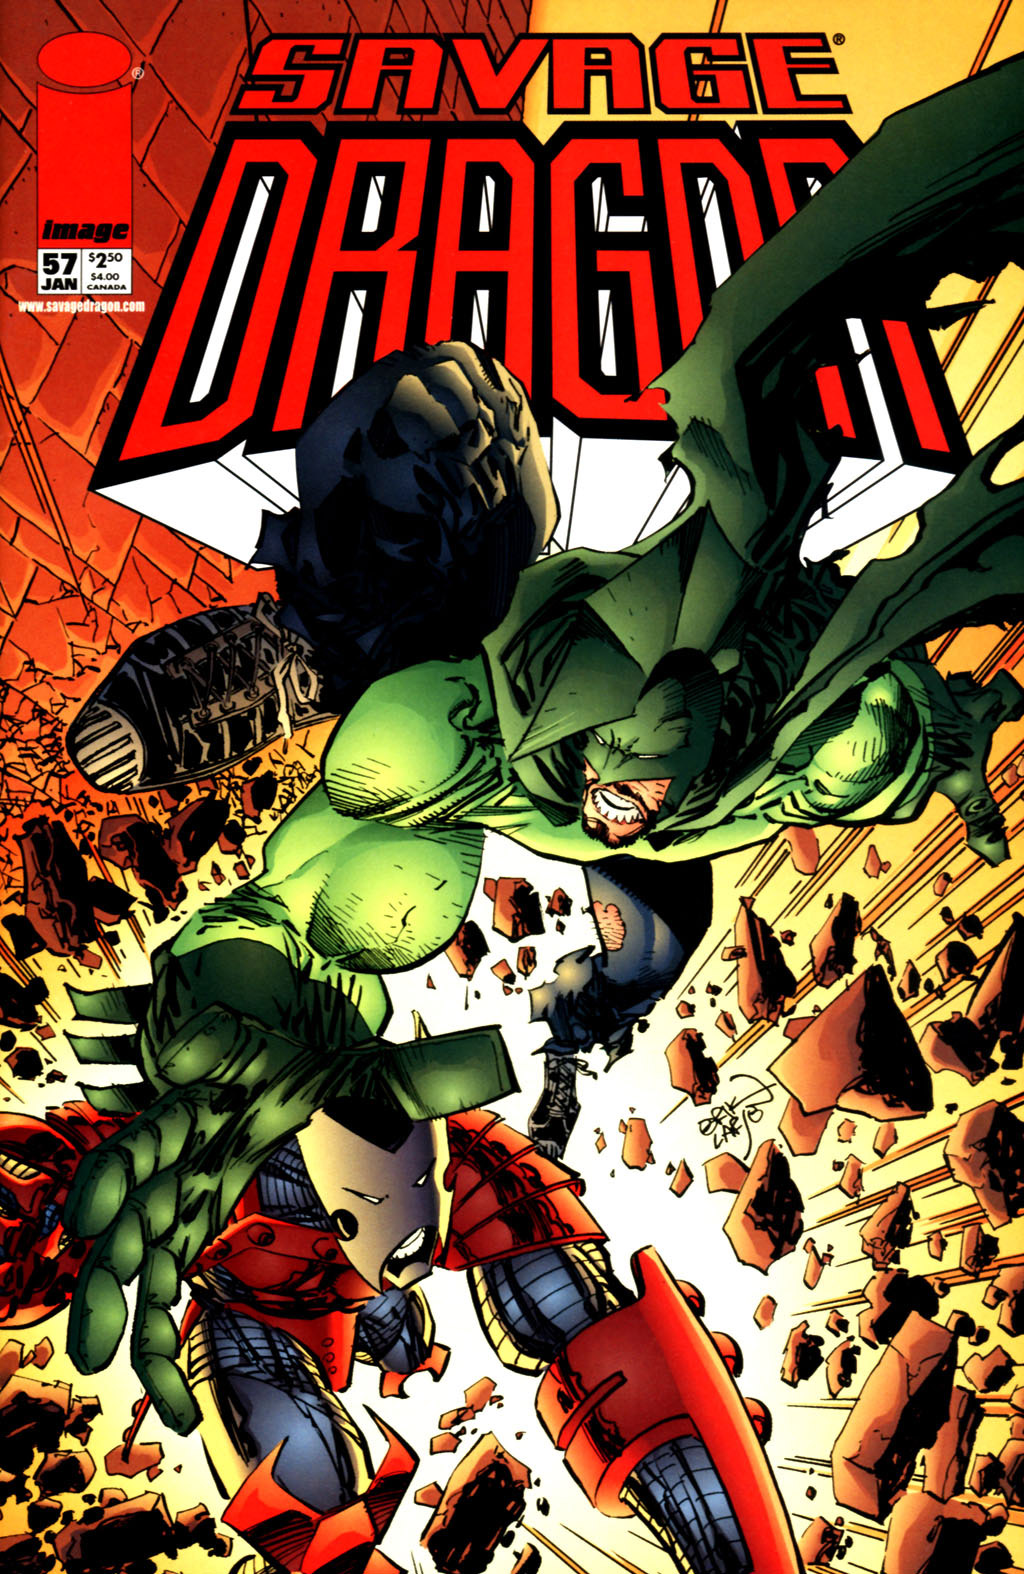 Cover Savage Dragon Vol.2 #57